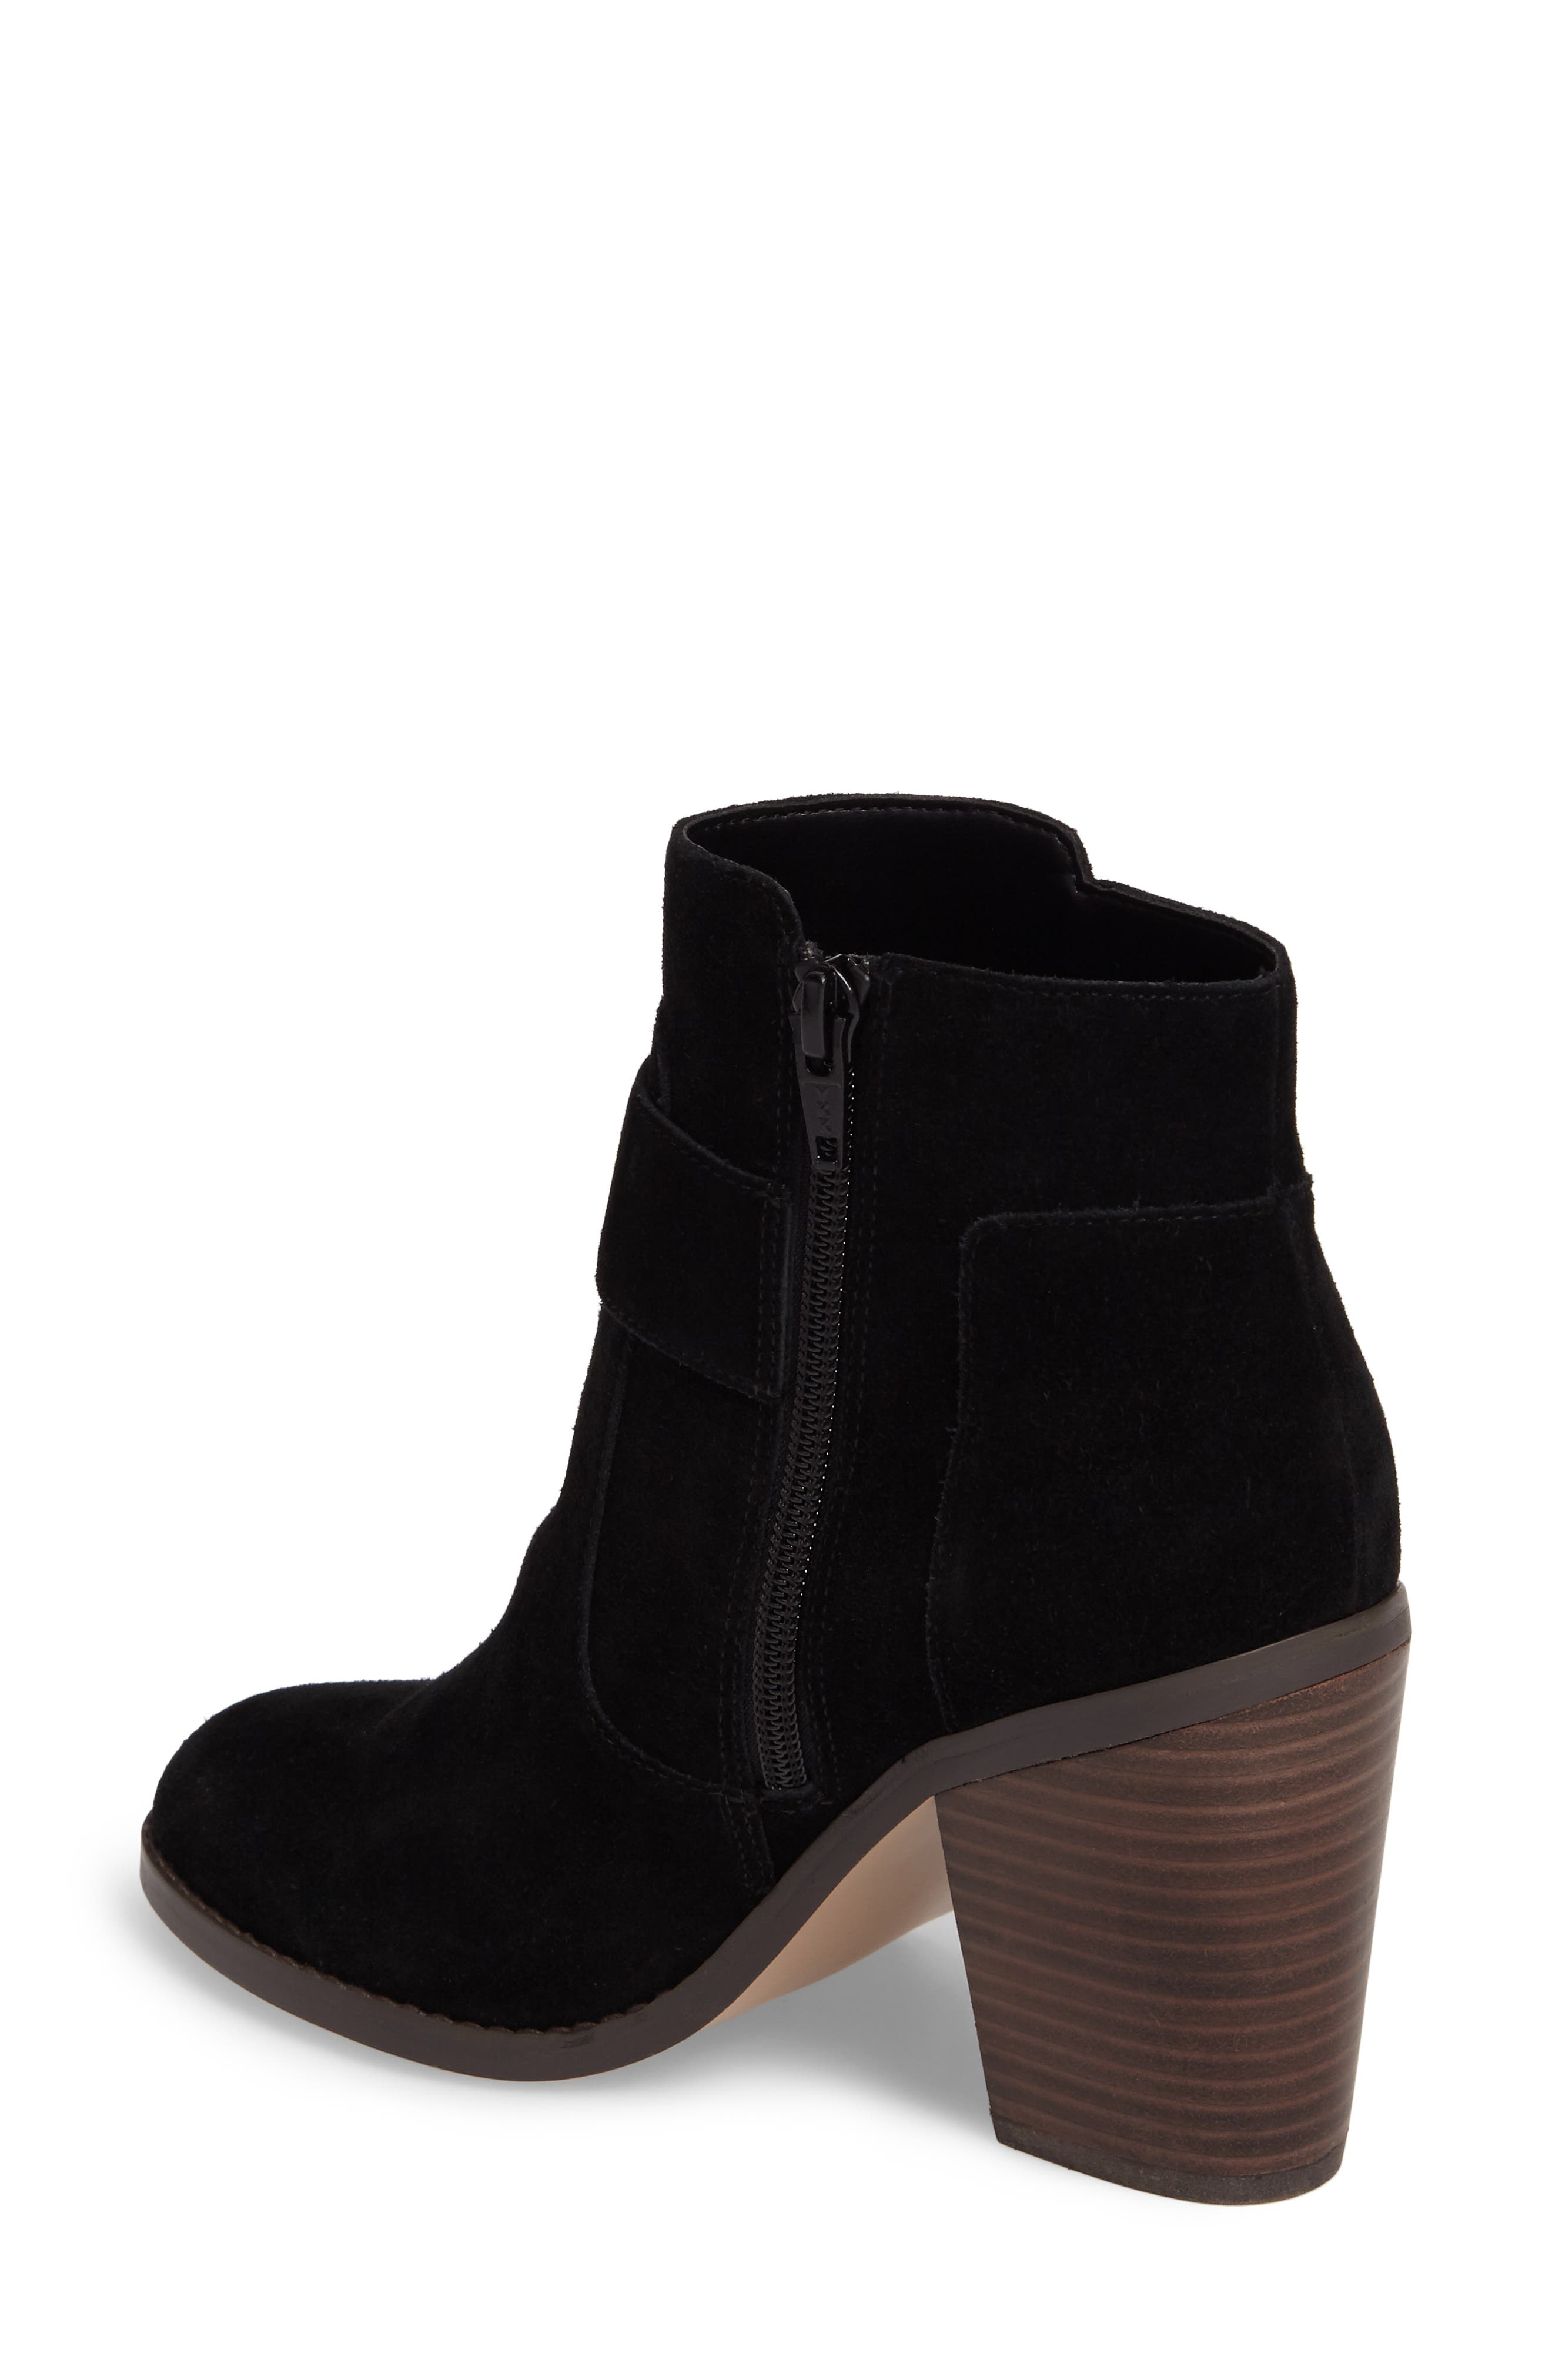 Grove Buckle Bootie,                             Alternate thumbnail 3, color,